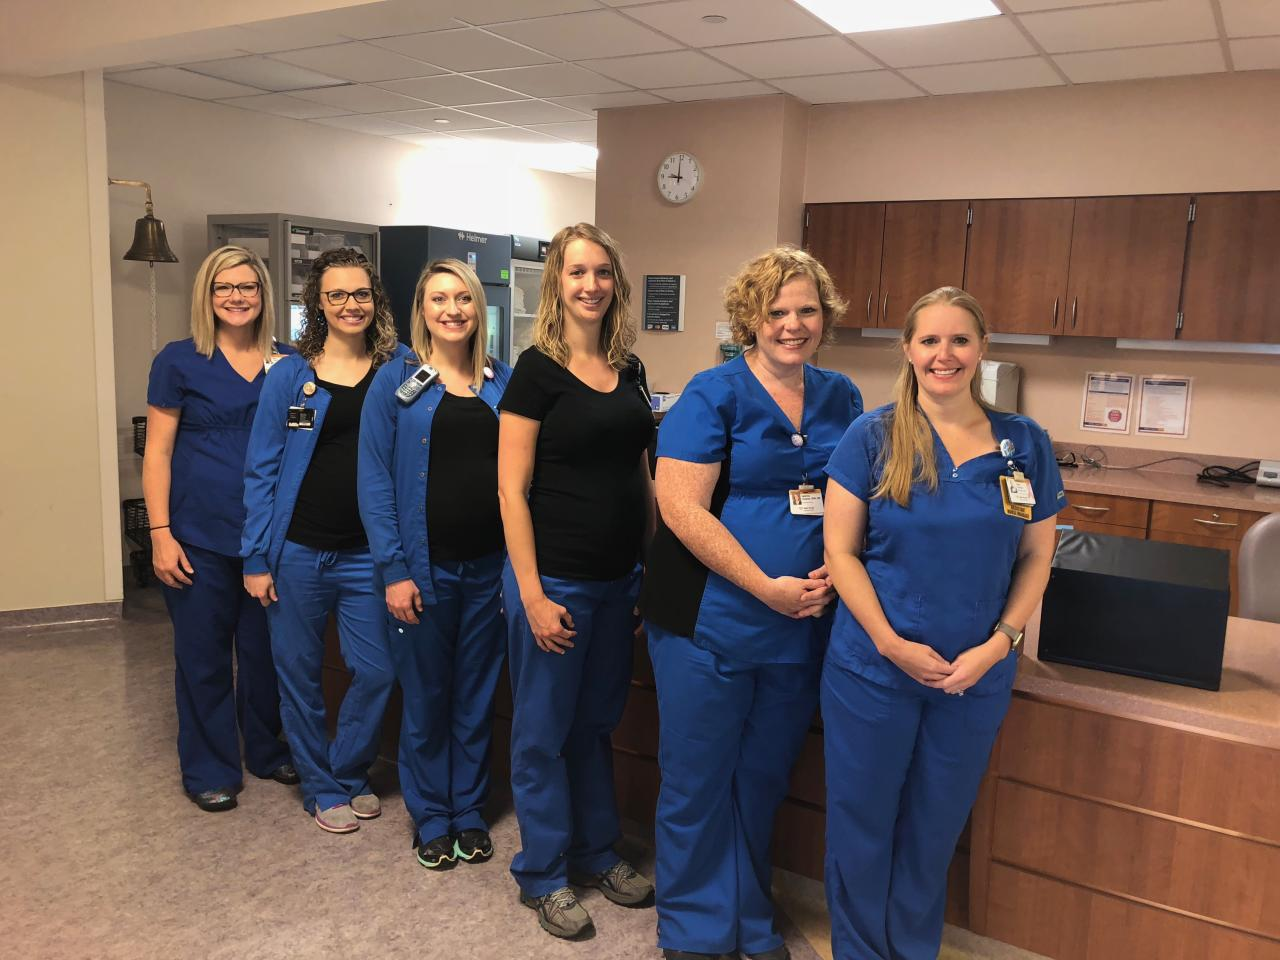 <p>Nina Day, Bethany Stringer, Emily Johnson, Nikki Huth, Sabrina Hudson, and Katie Carlton (Photo: Wake Forest Baptist Medical Center) </p>